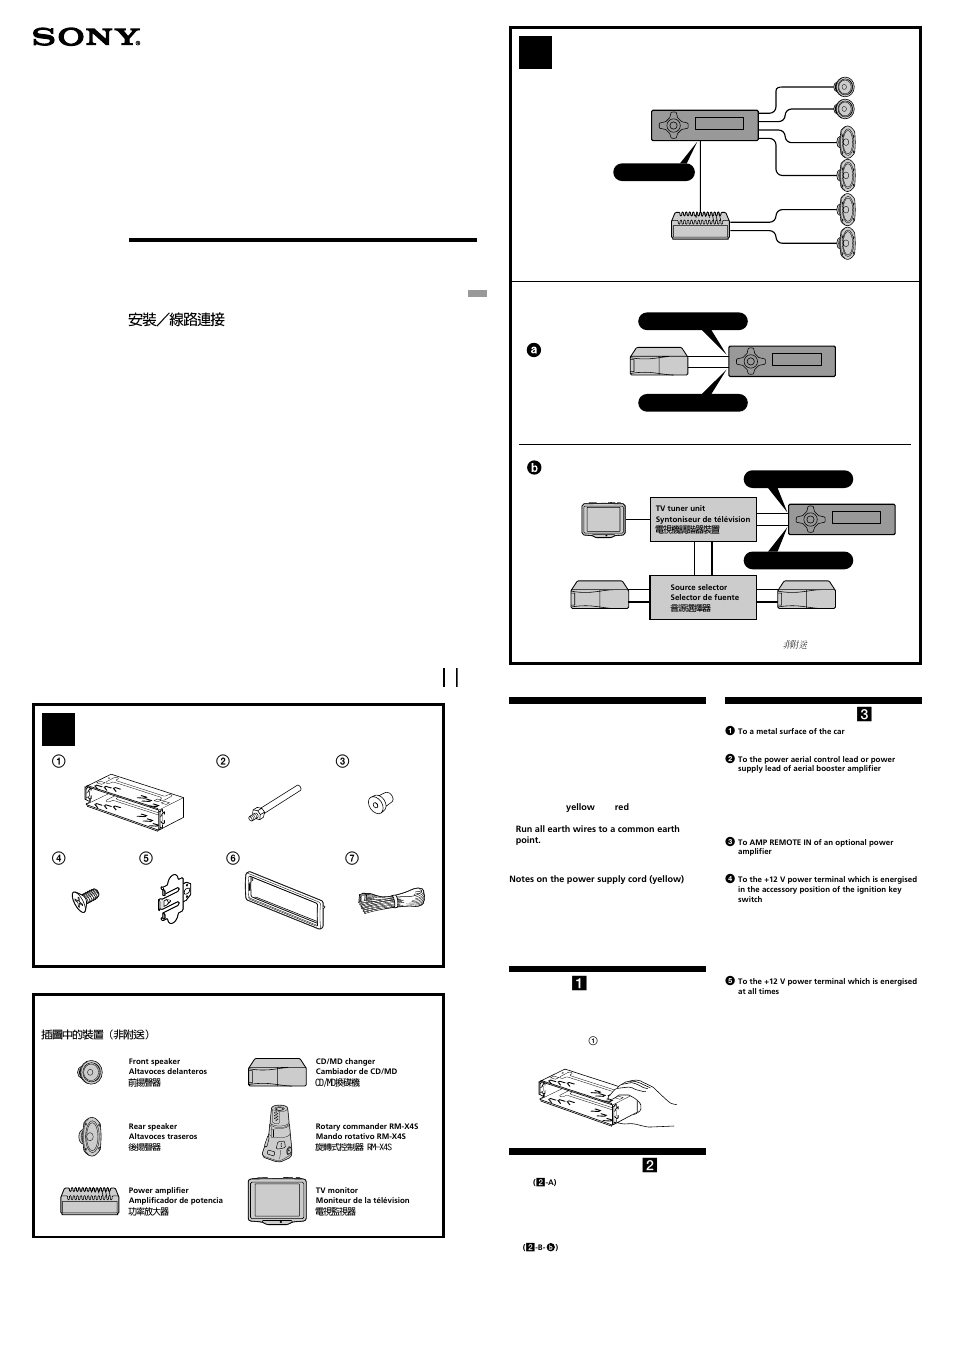 sony xr ca620x page1?resize\=665%2C945 alpine stereo wiring diagram alpine wiring diagrams sony stereo wire harness diagram at eliteediting.co